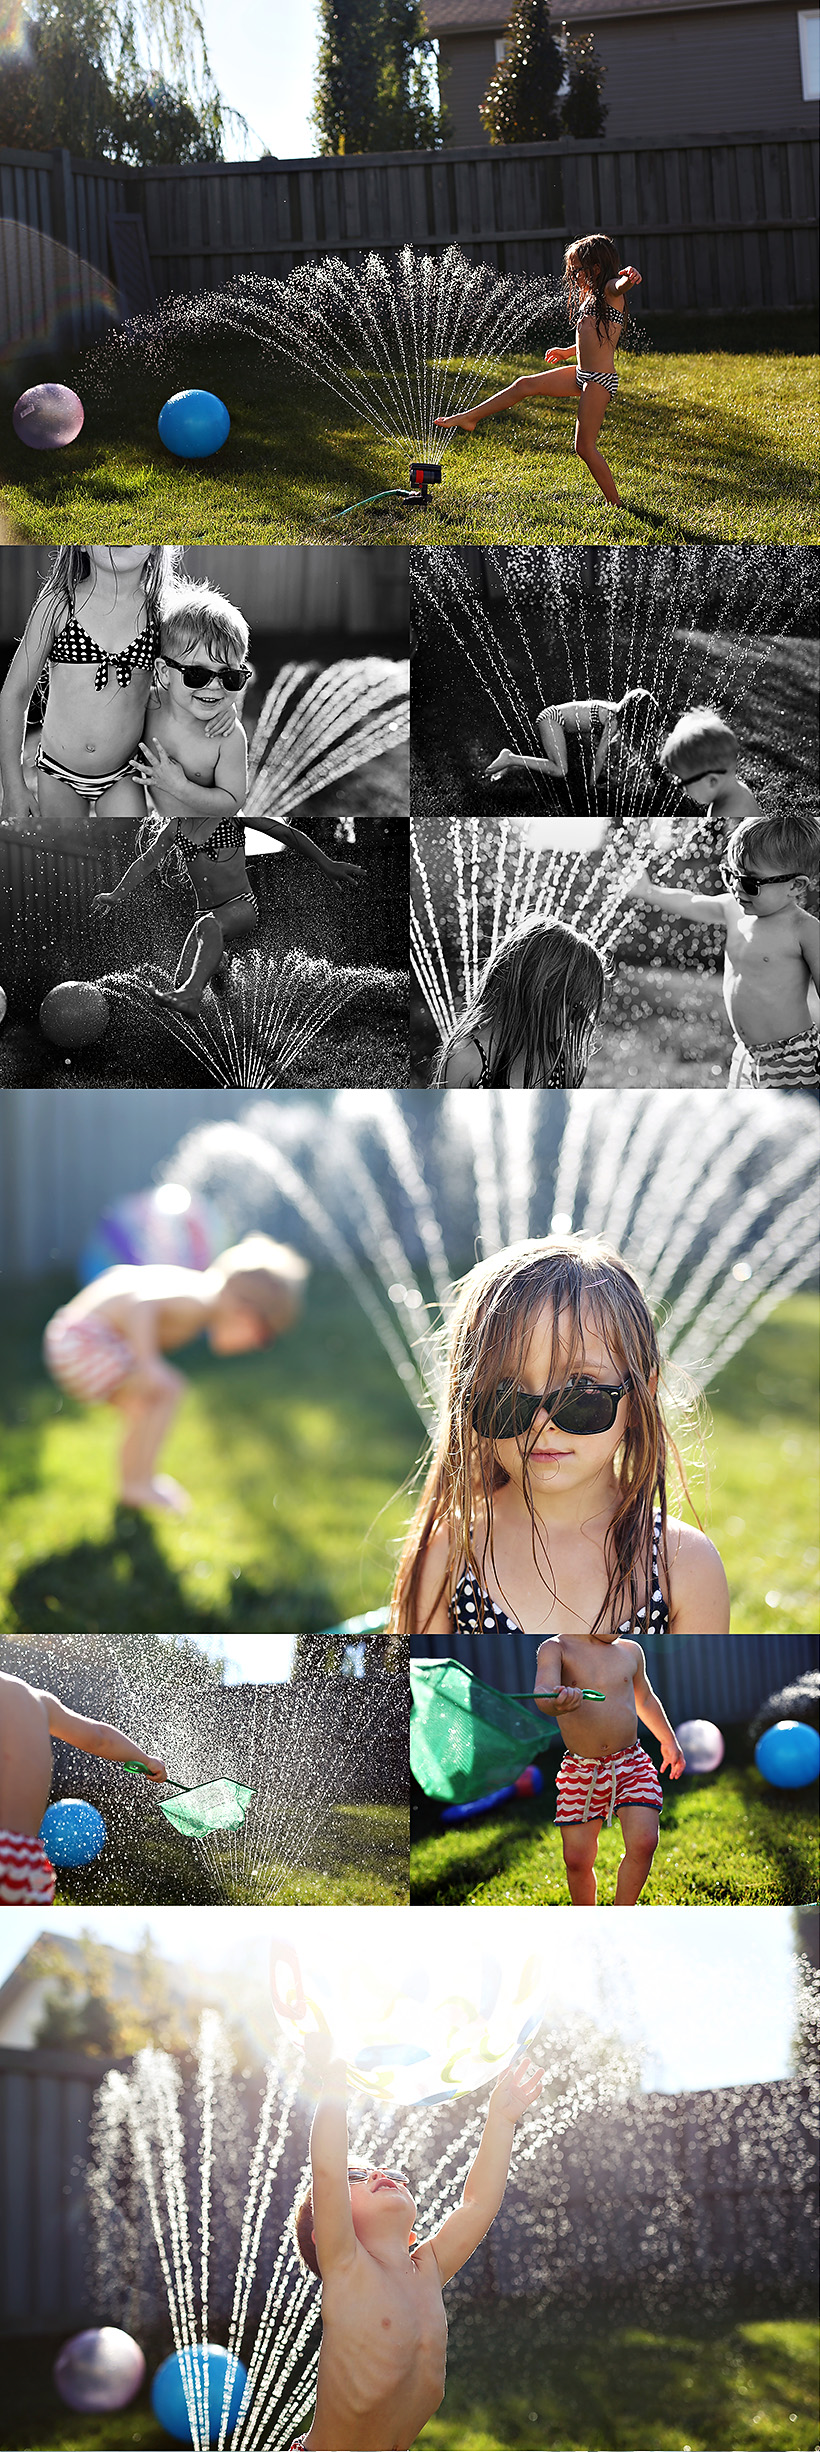 edmonton-lifestyle-childrens-photographer-1